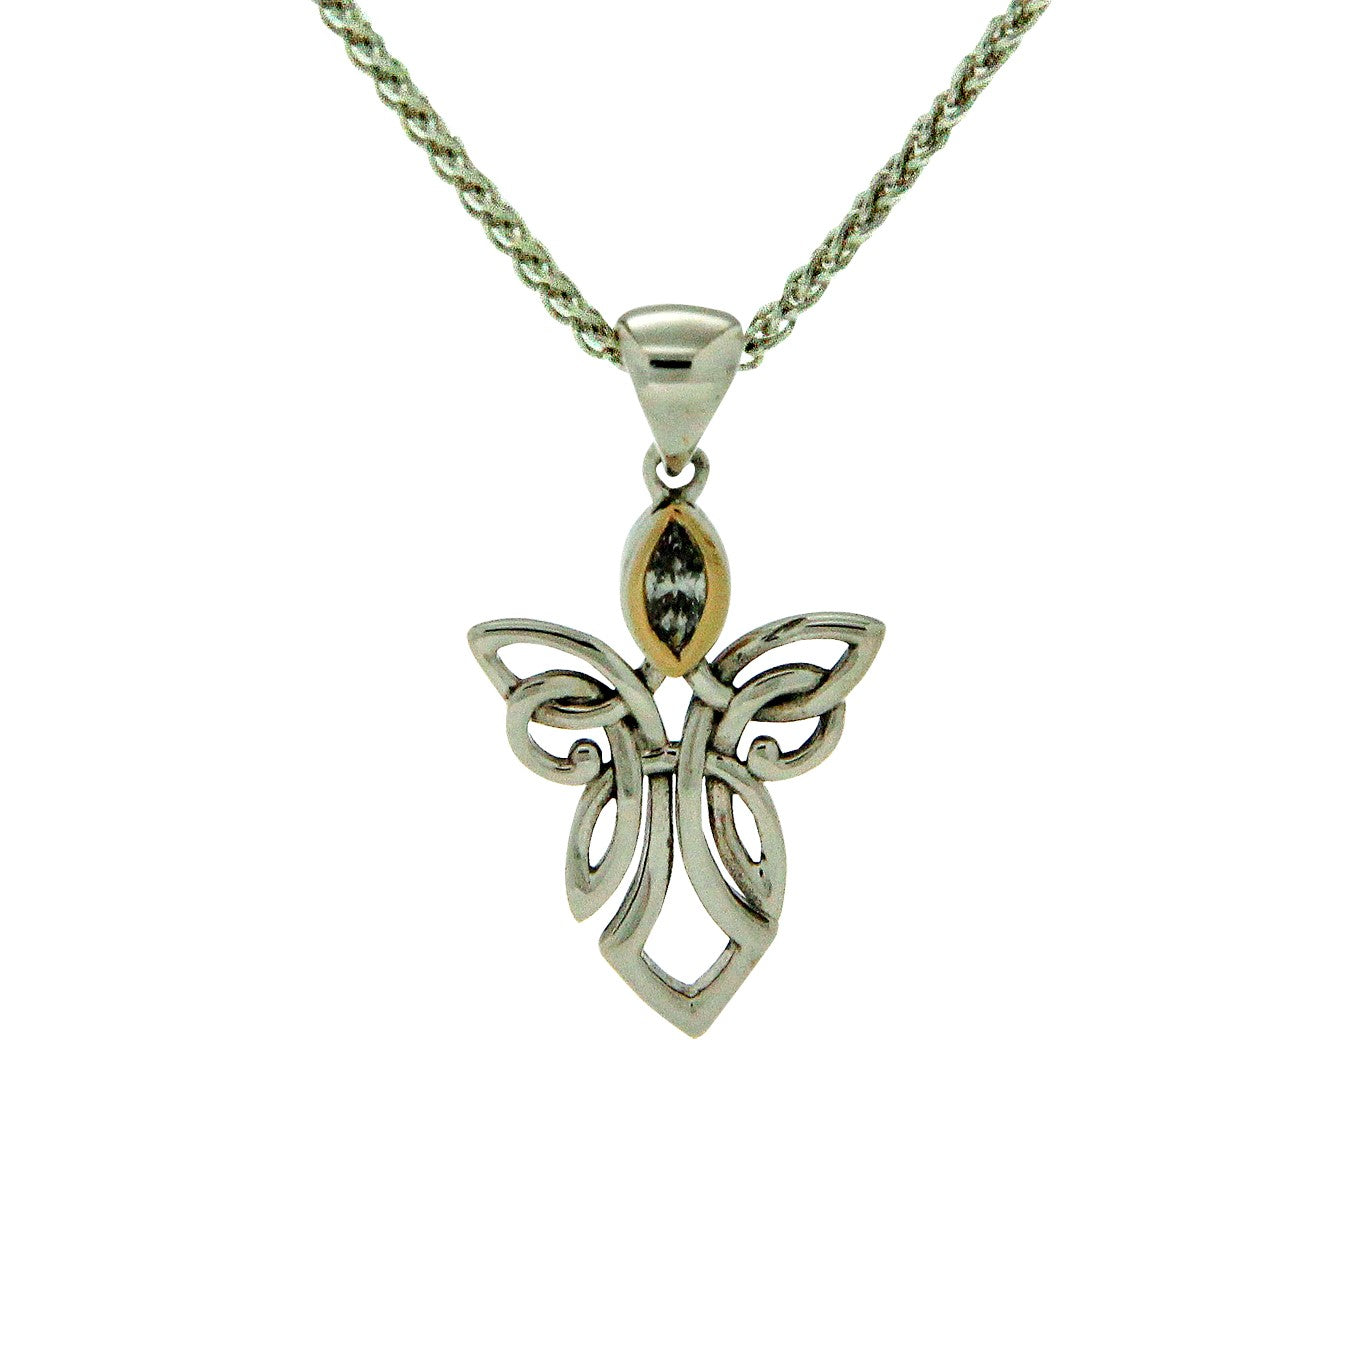 46bb86ab251 Guardian Angel Pendant - Small - Celtic Creations